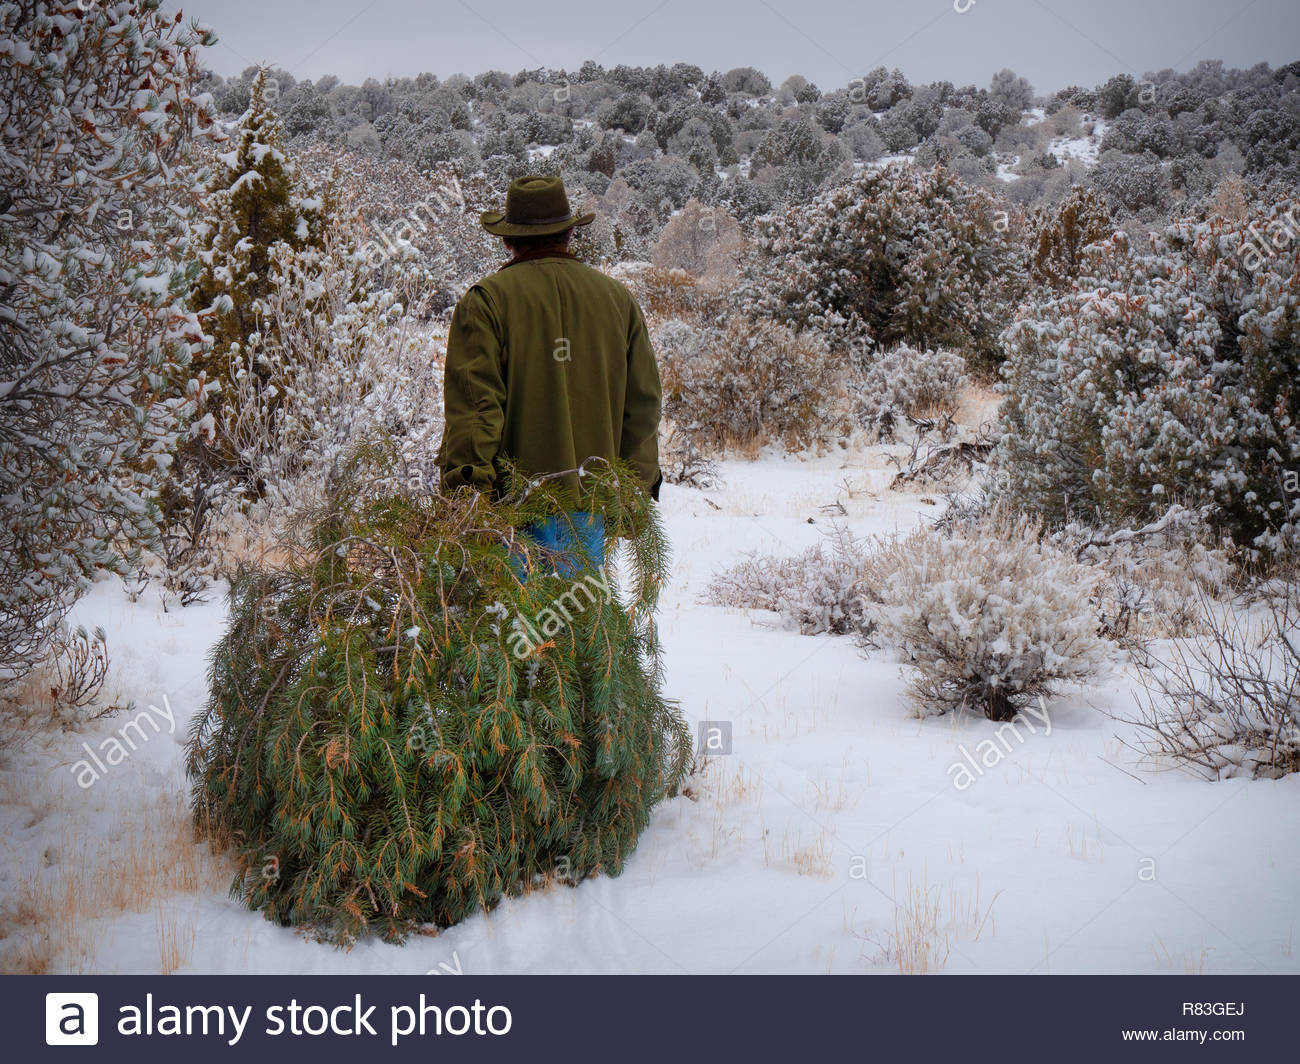 Christmas Tree In The Desert.Rugged Man Hauling Freshly Harvested Christmas Tree In Snowy